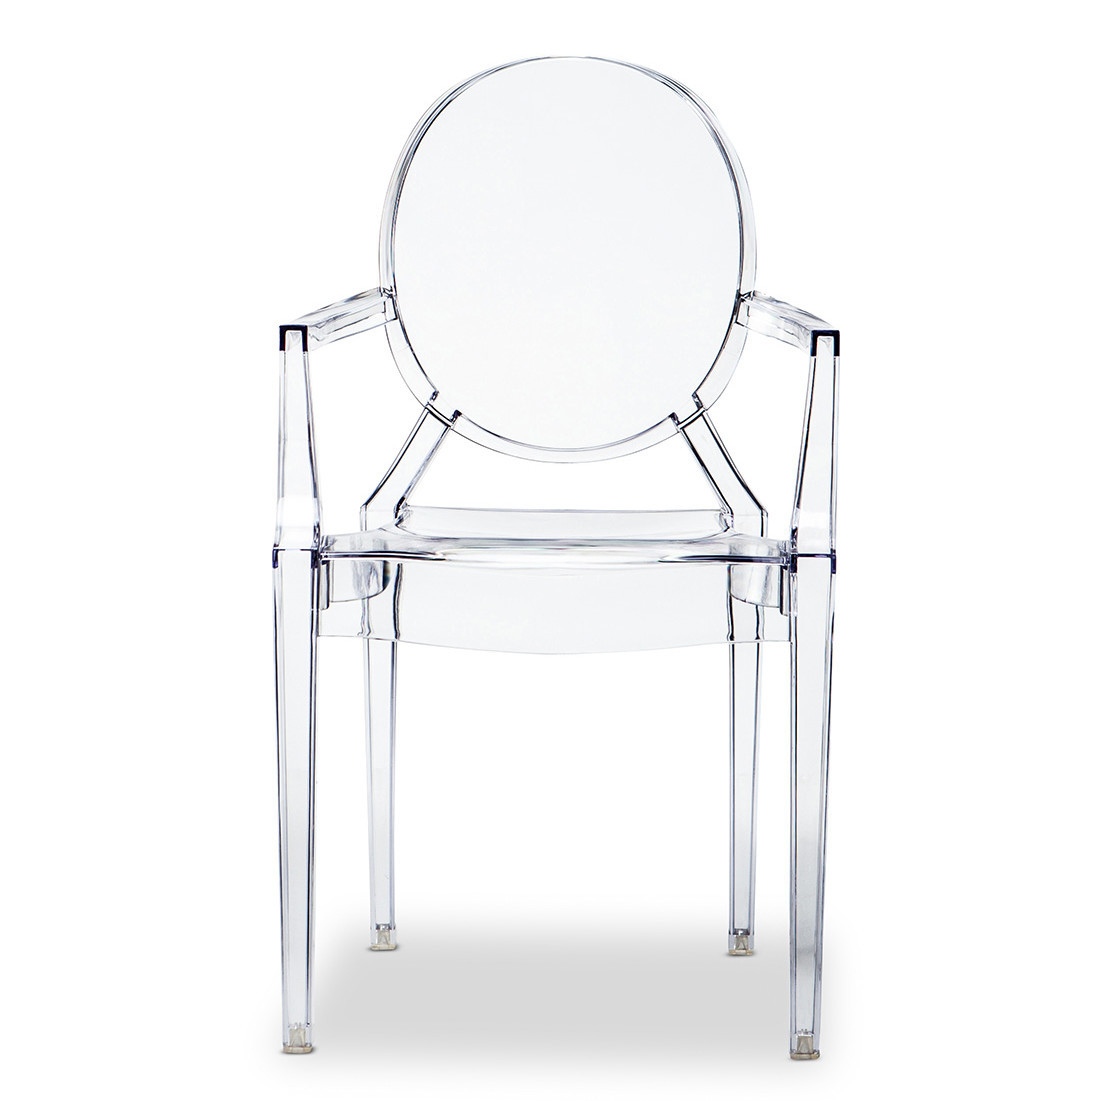 Victoria ghost chair philippe starck chaise louis ghost for Chaise louis ghost philippe starck